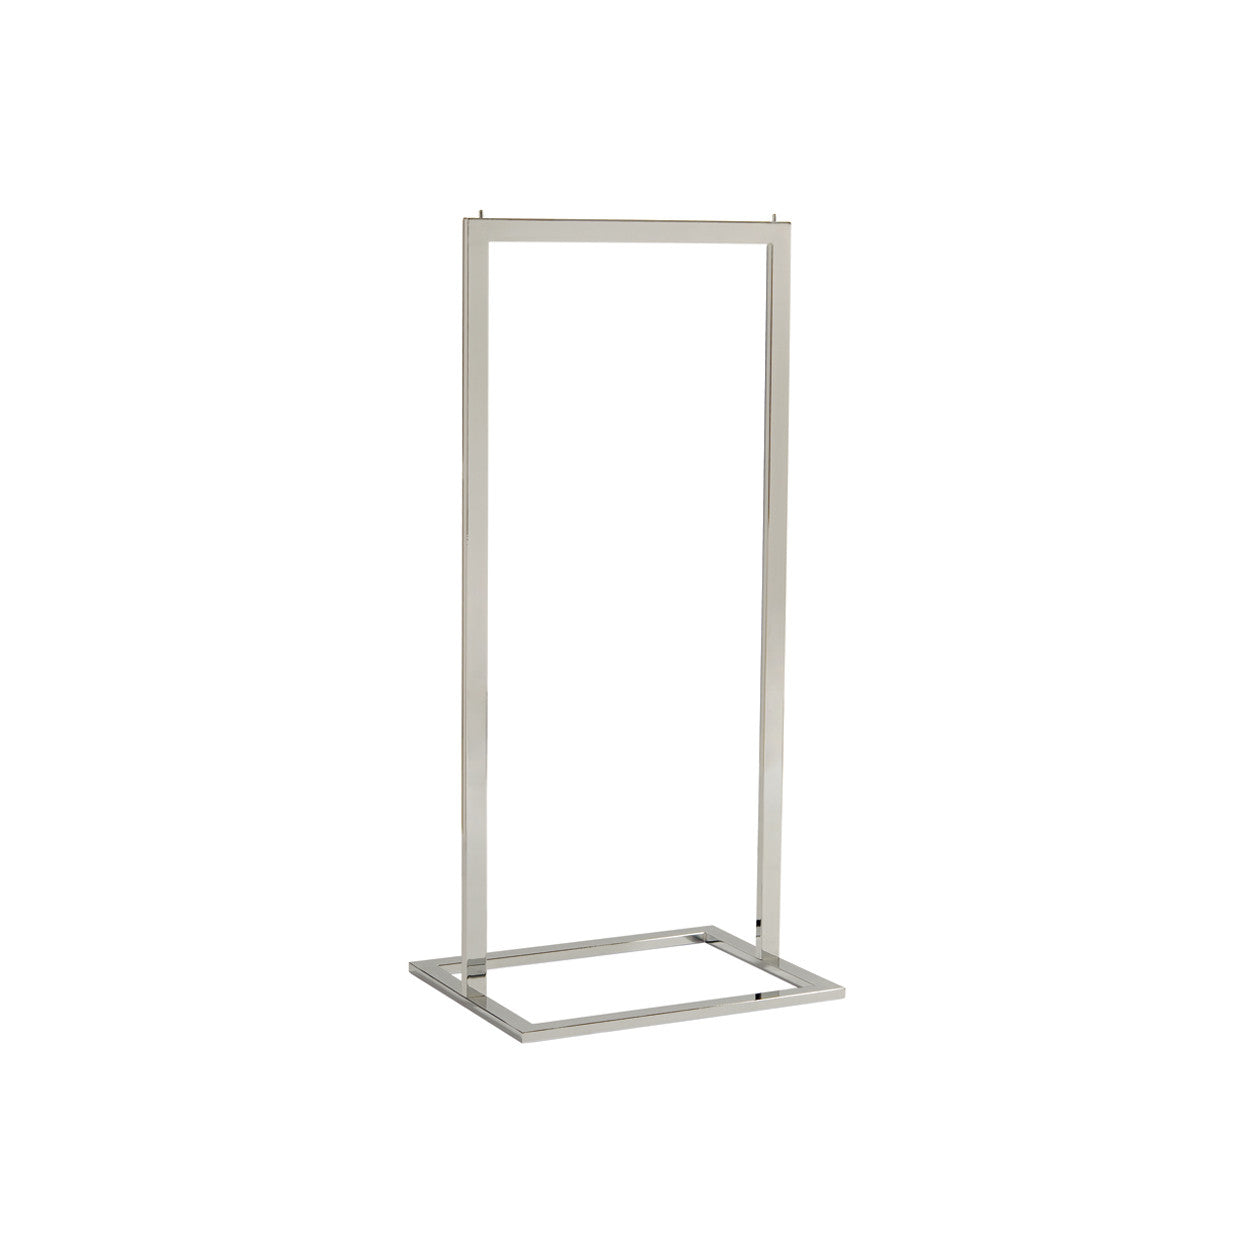 Style Clothes Rack - Single Rail in Chrome (600mm W x 1317mm H x 457mm D)